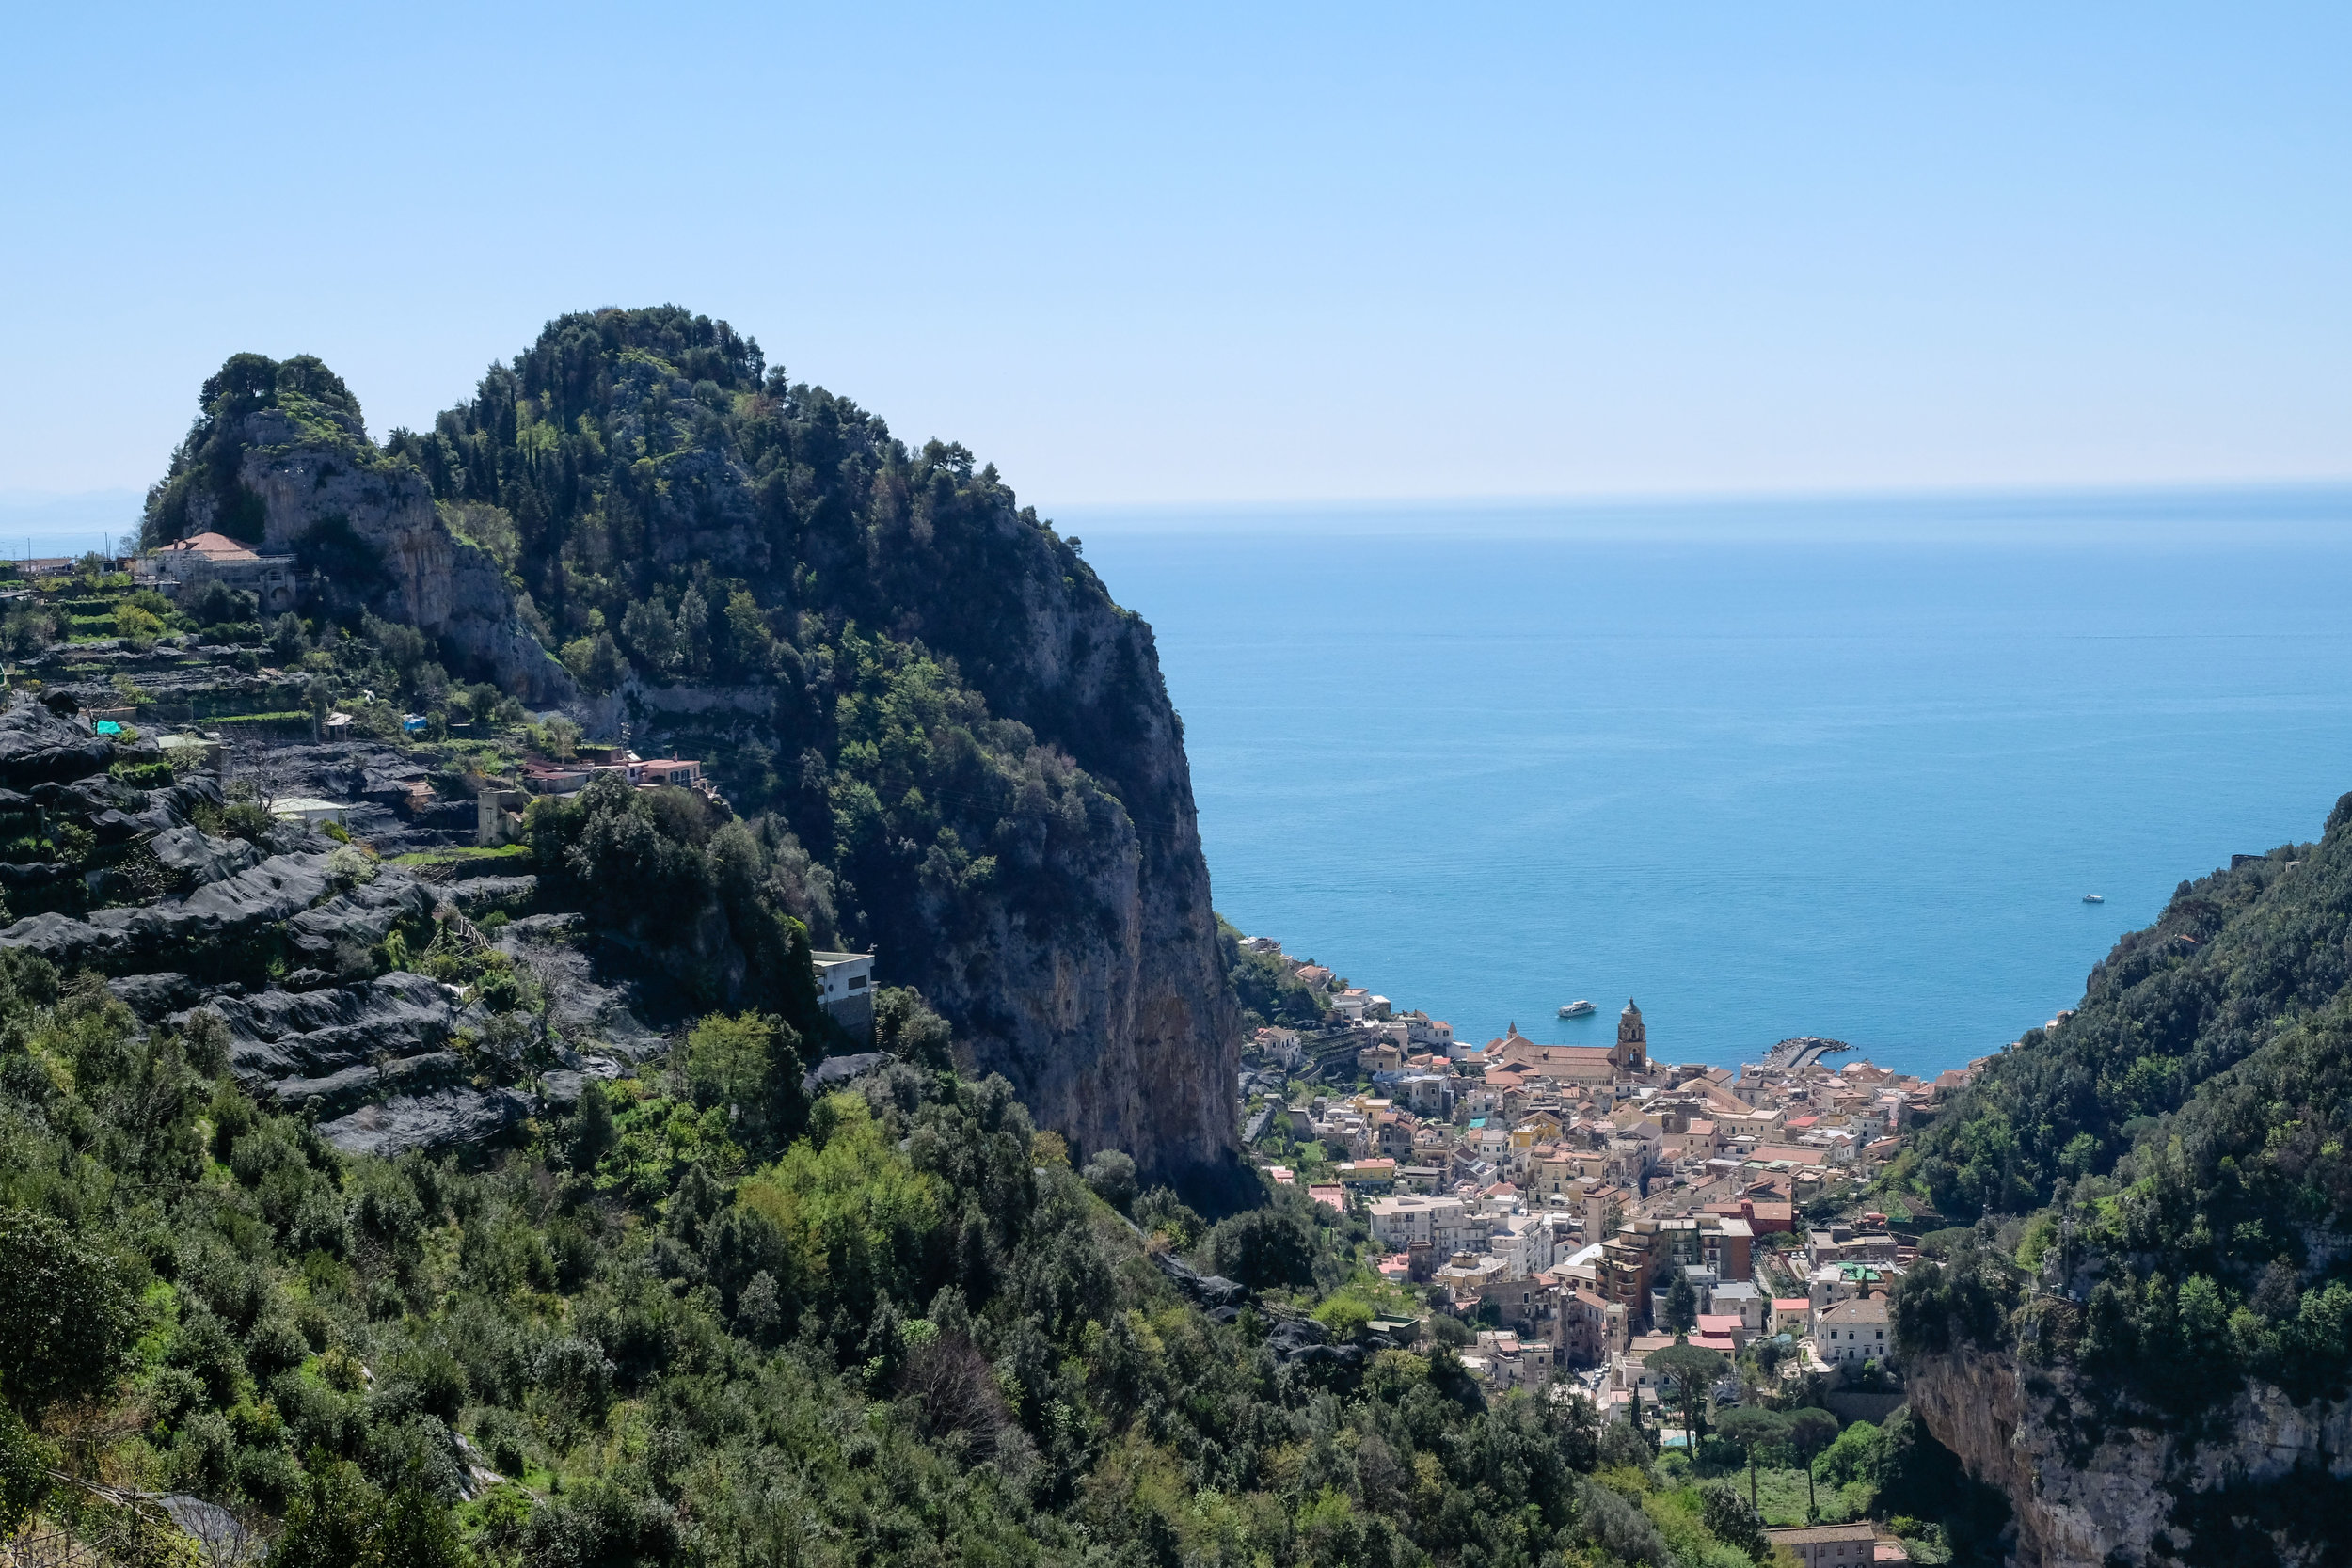 Don't miss this amazing amalfi coast hike - May 24th, 2018